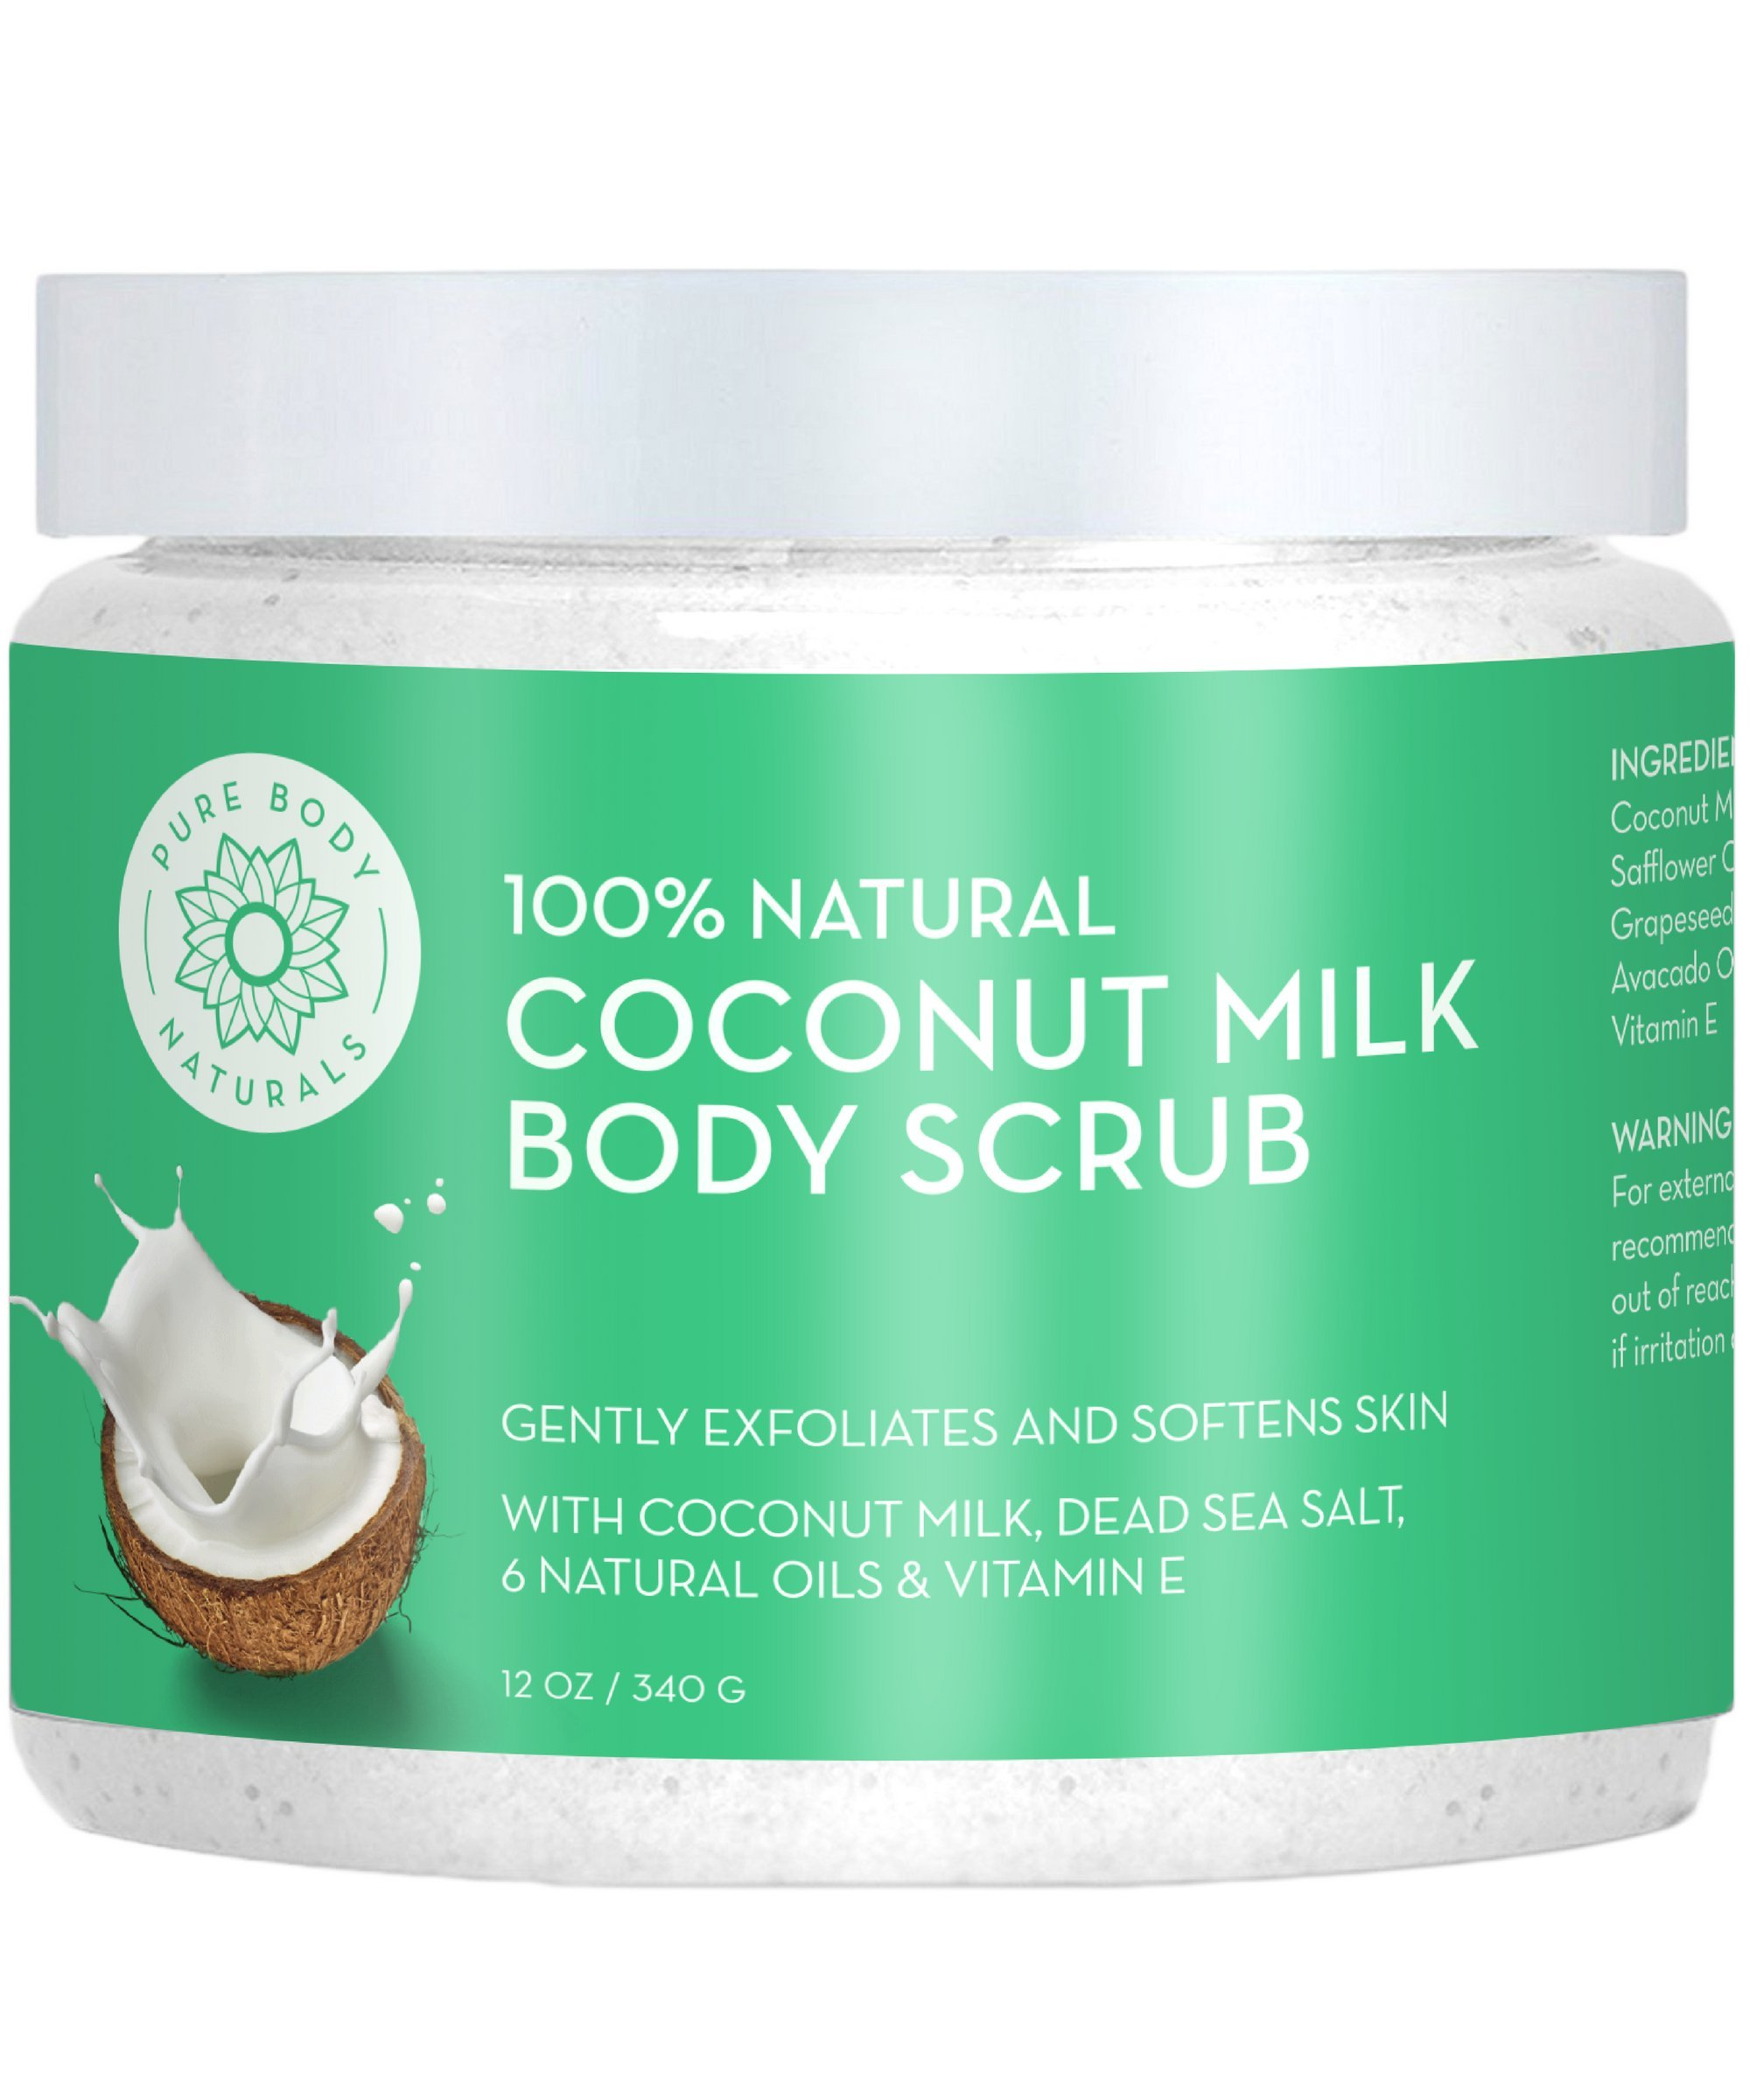 Exfoliating Body Scrub with Hydrating Coconut Milk and Detoxifying Dead Sea Salt, Moisturizing Face Scrub and Mask by Pure Body Naturals, 12 Ounce (Label Varies)